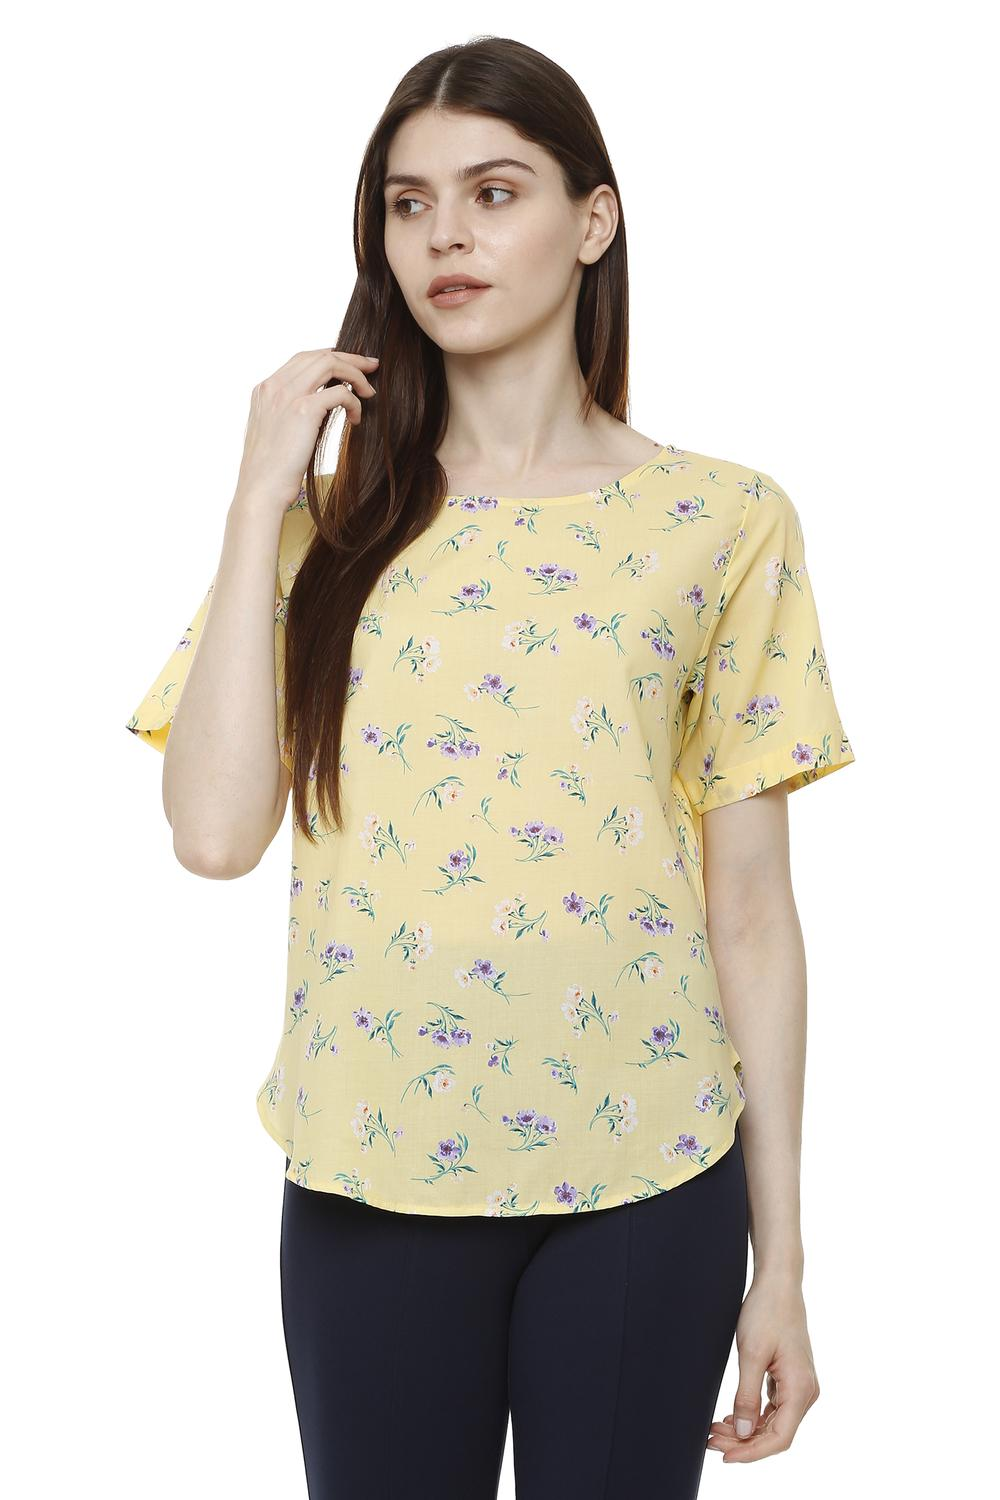 98e78d6d7708a Solly Tees & Tops, Allen Solly Yellow Top for Women at Allensolly.com